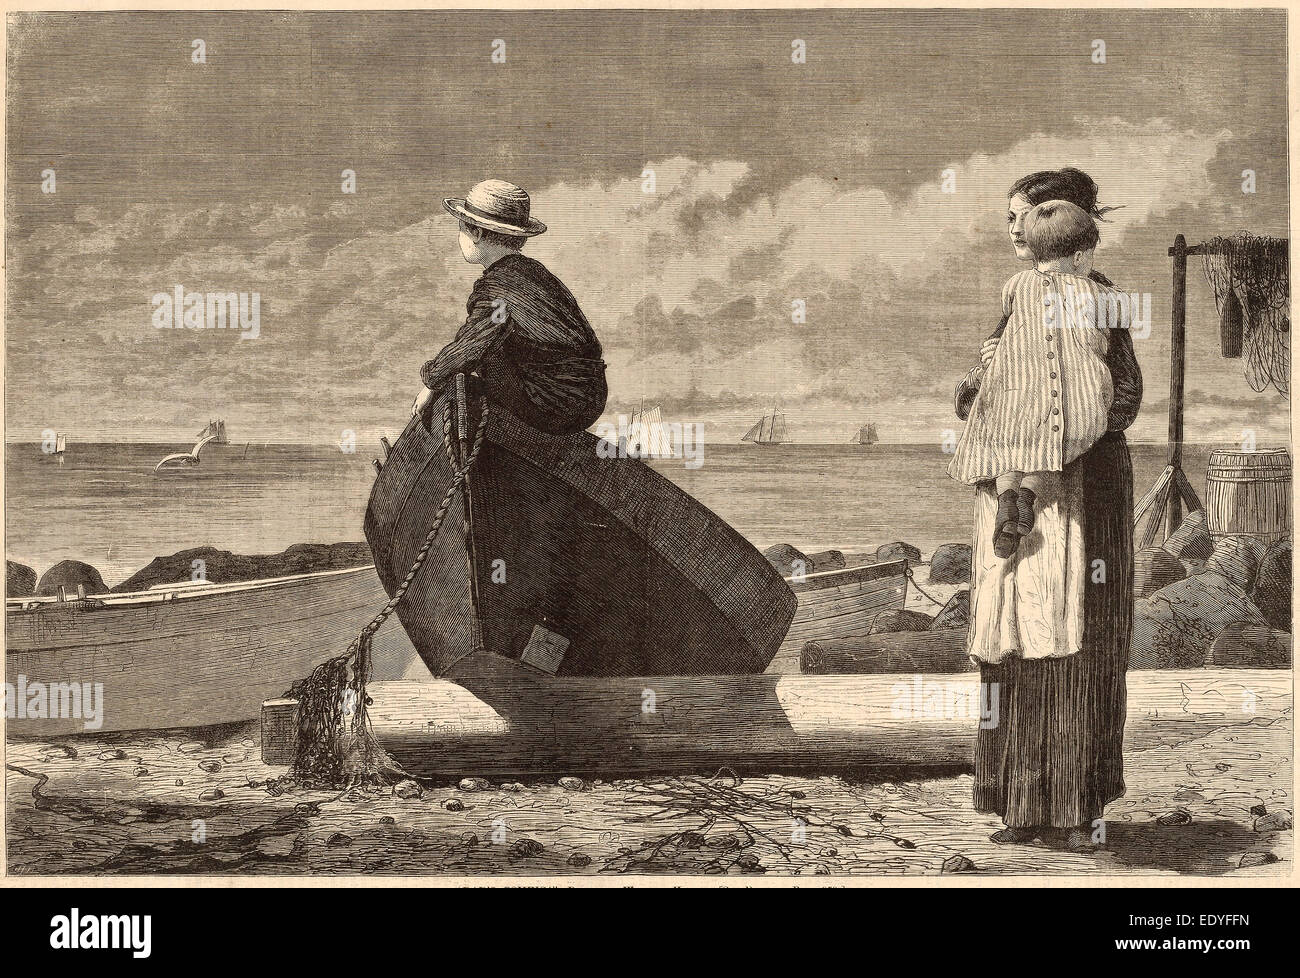 after Winslow Homer, 'Dad's Coming!', published 1873, wood engraving - Stock Image